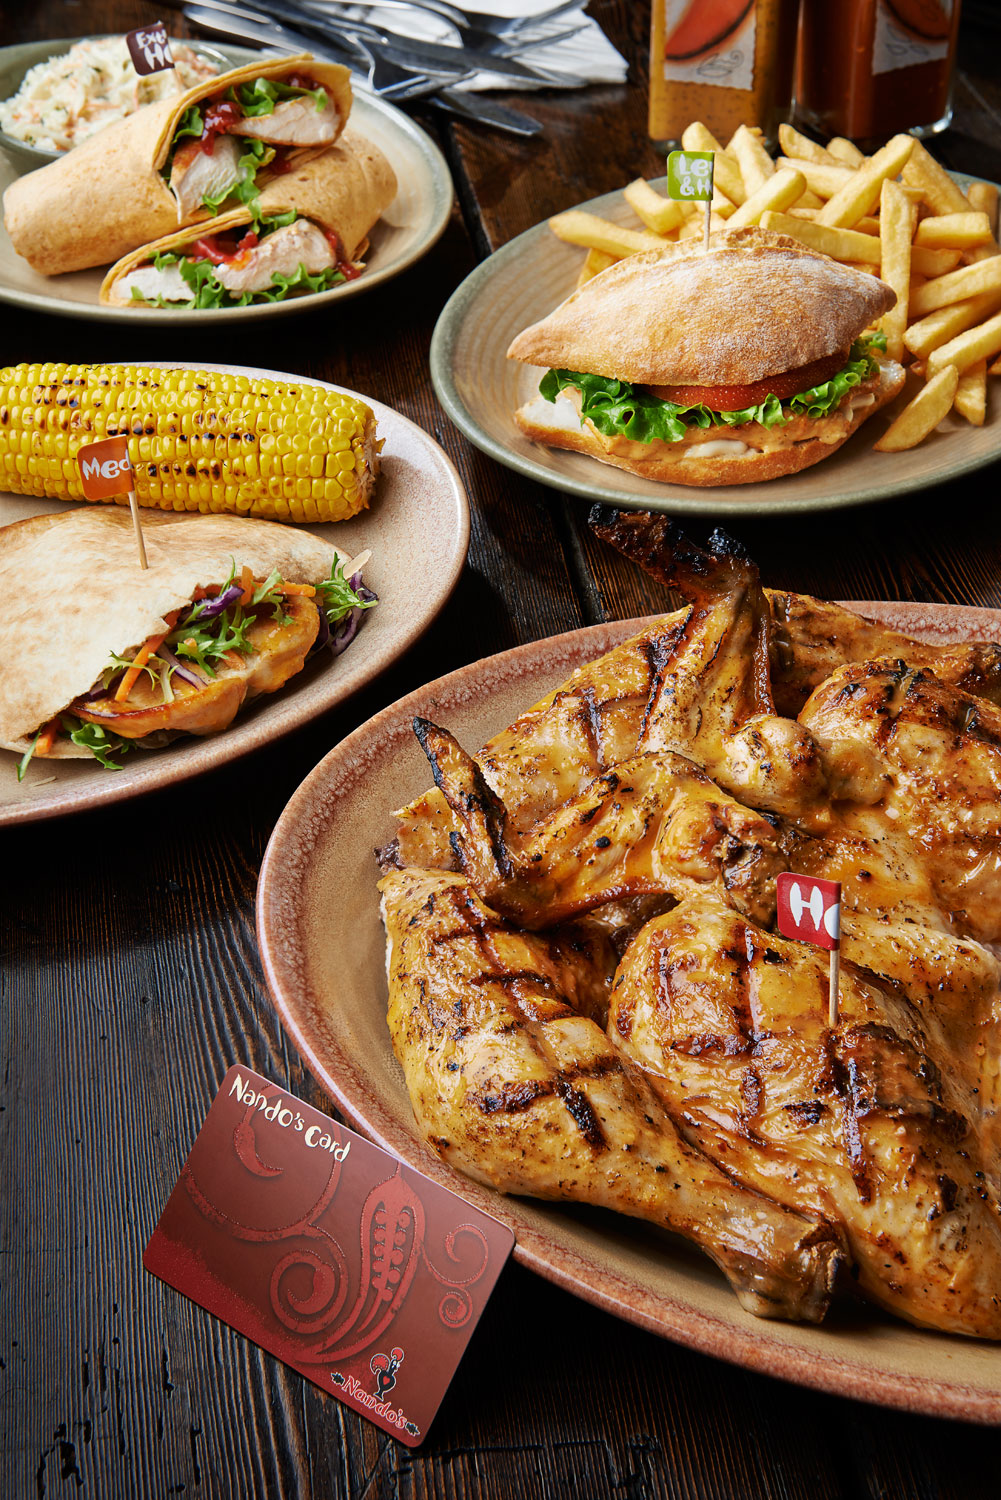 Nandos Card: Red Offers